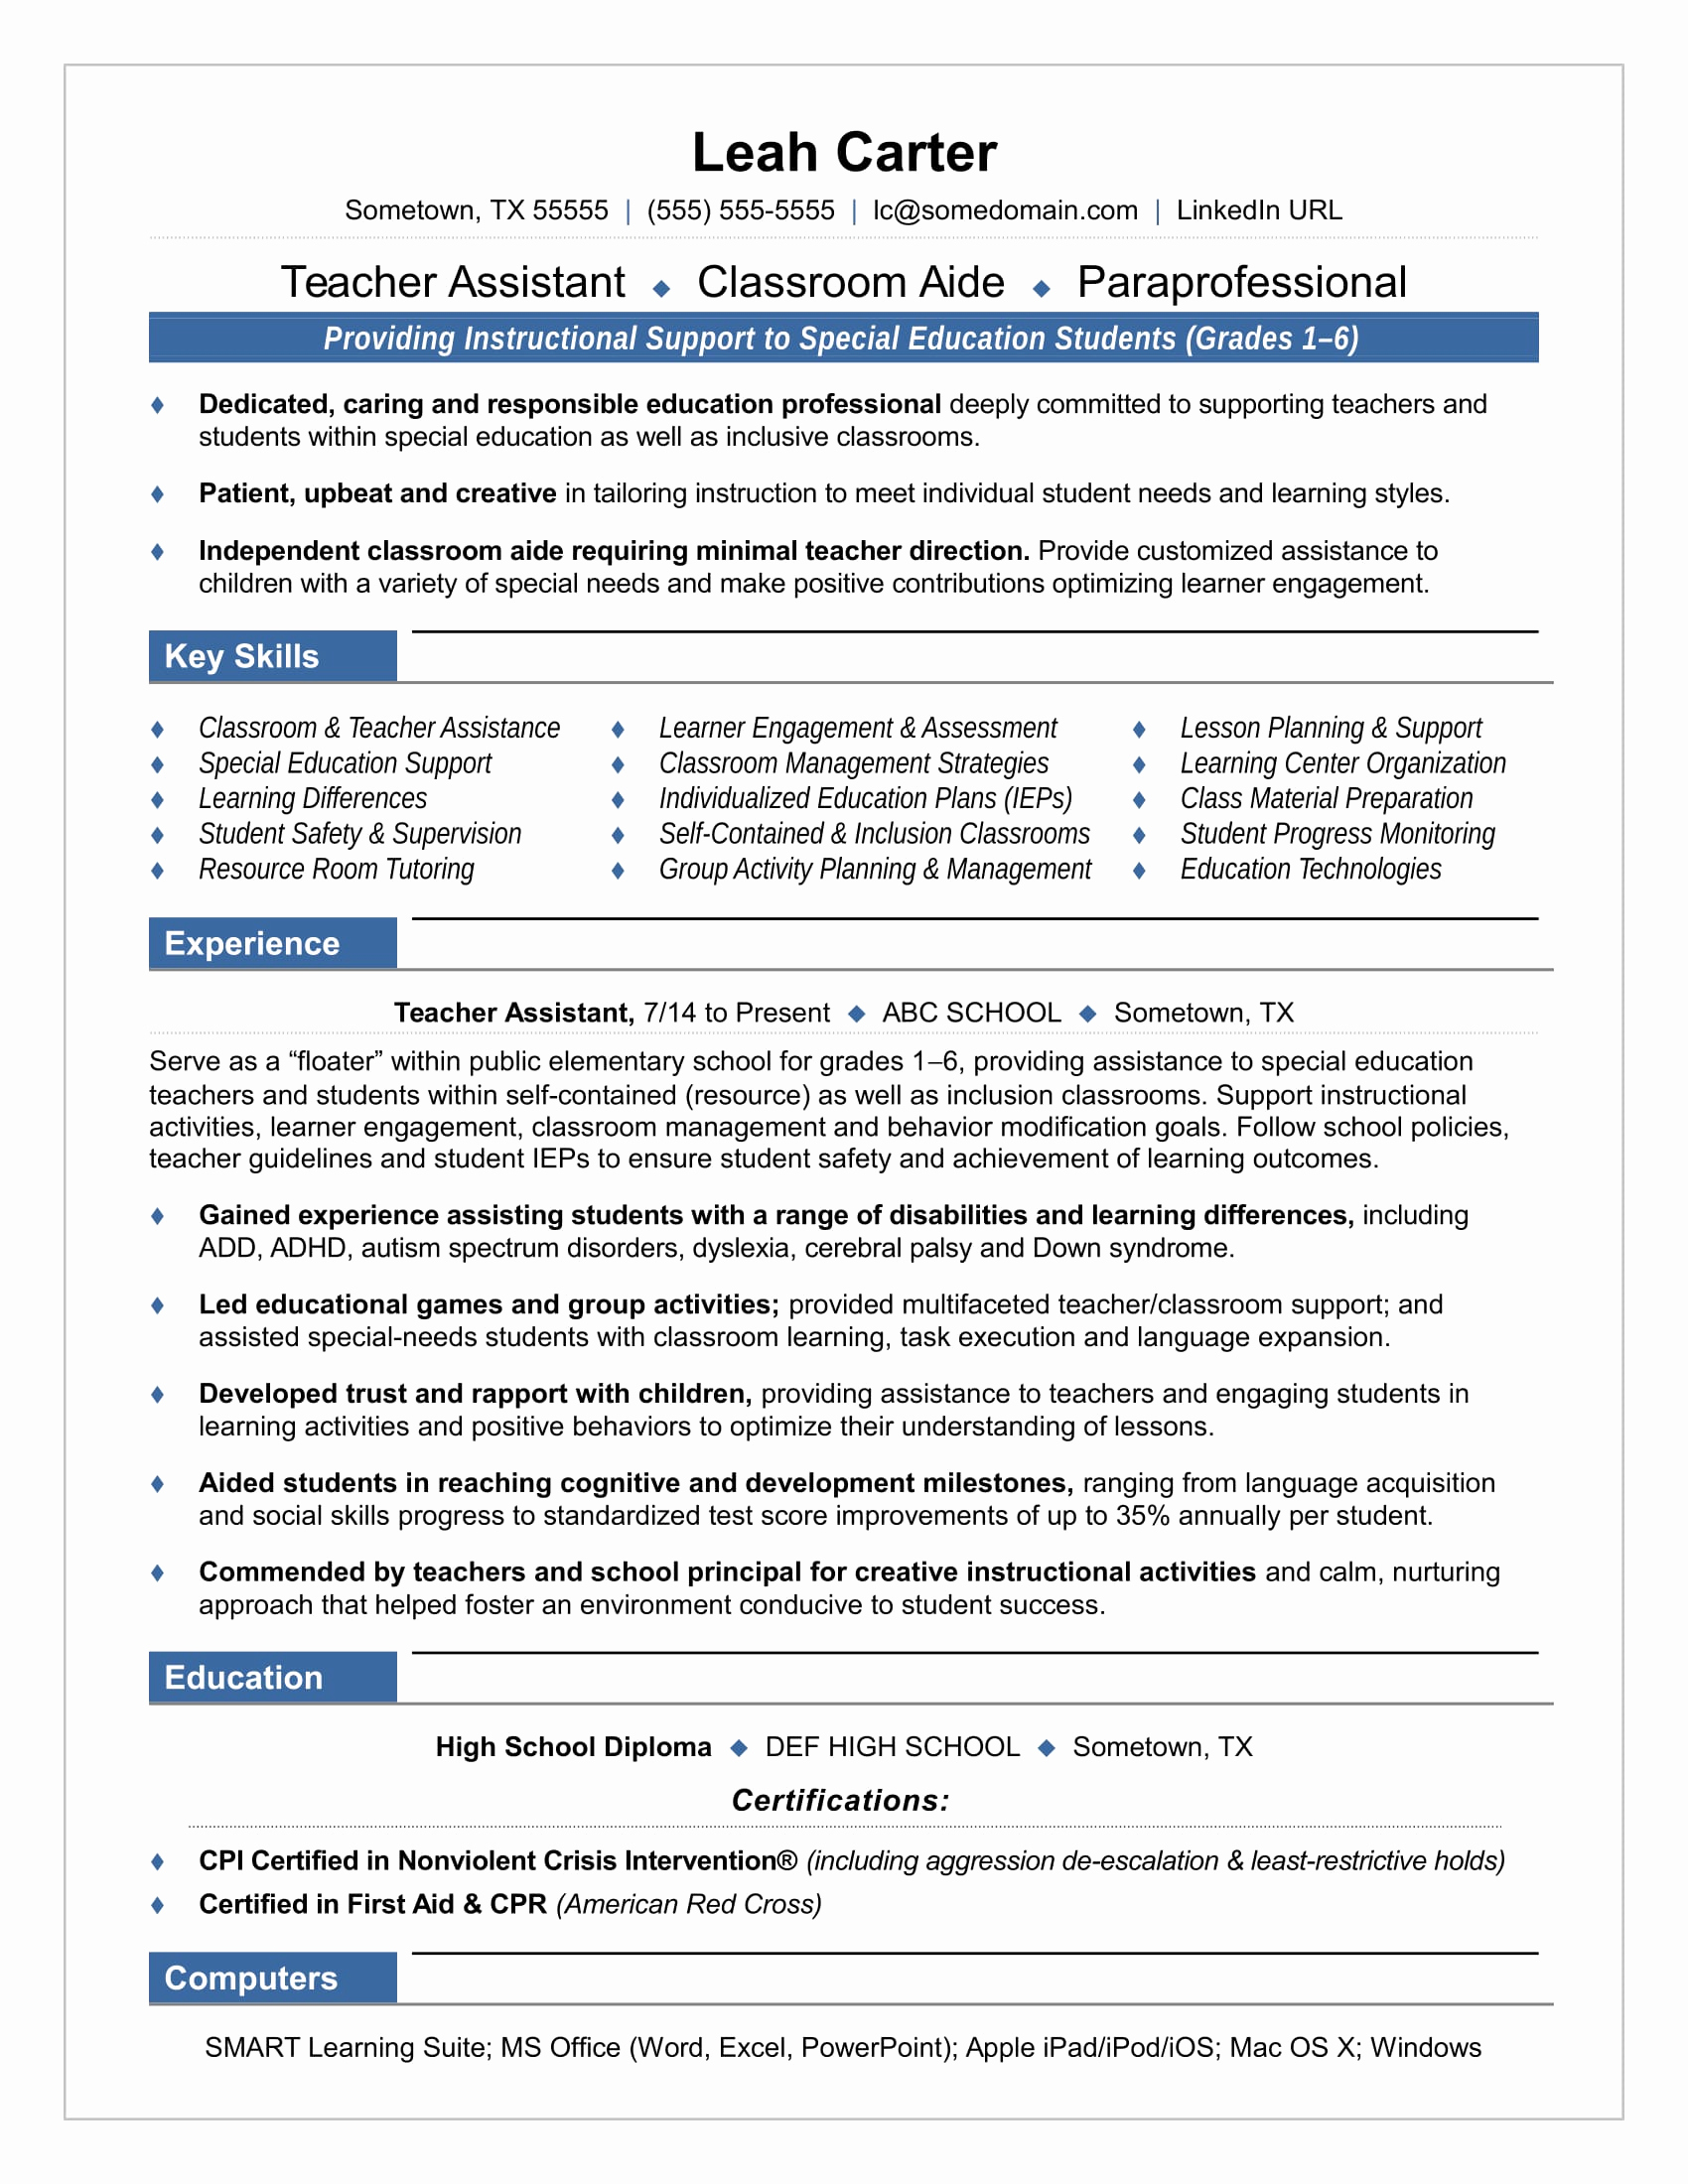 Resume Template for Teaching Elegant Teacher assistant Resume Sample